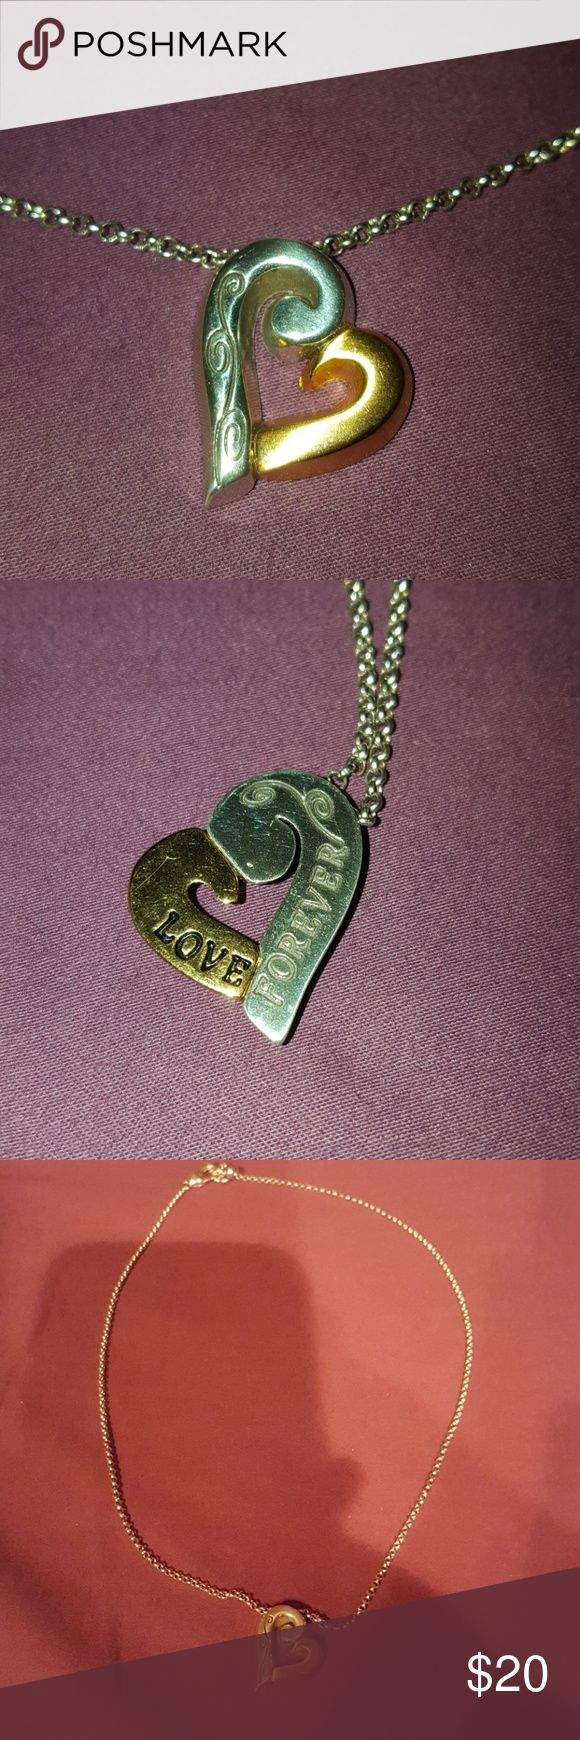 """NEW Brighton Two-tone Heart Necklace New without Tags - silver/gold heart necklace with silver chain. Beautiful scroll detail on front of heart, """"Love Forever"""" with scroll detail on back of heart. Brighton jewelry bag included. Brighton Jewelry Necklaces"""